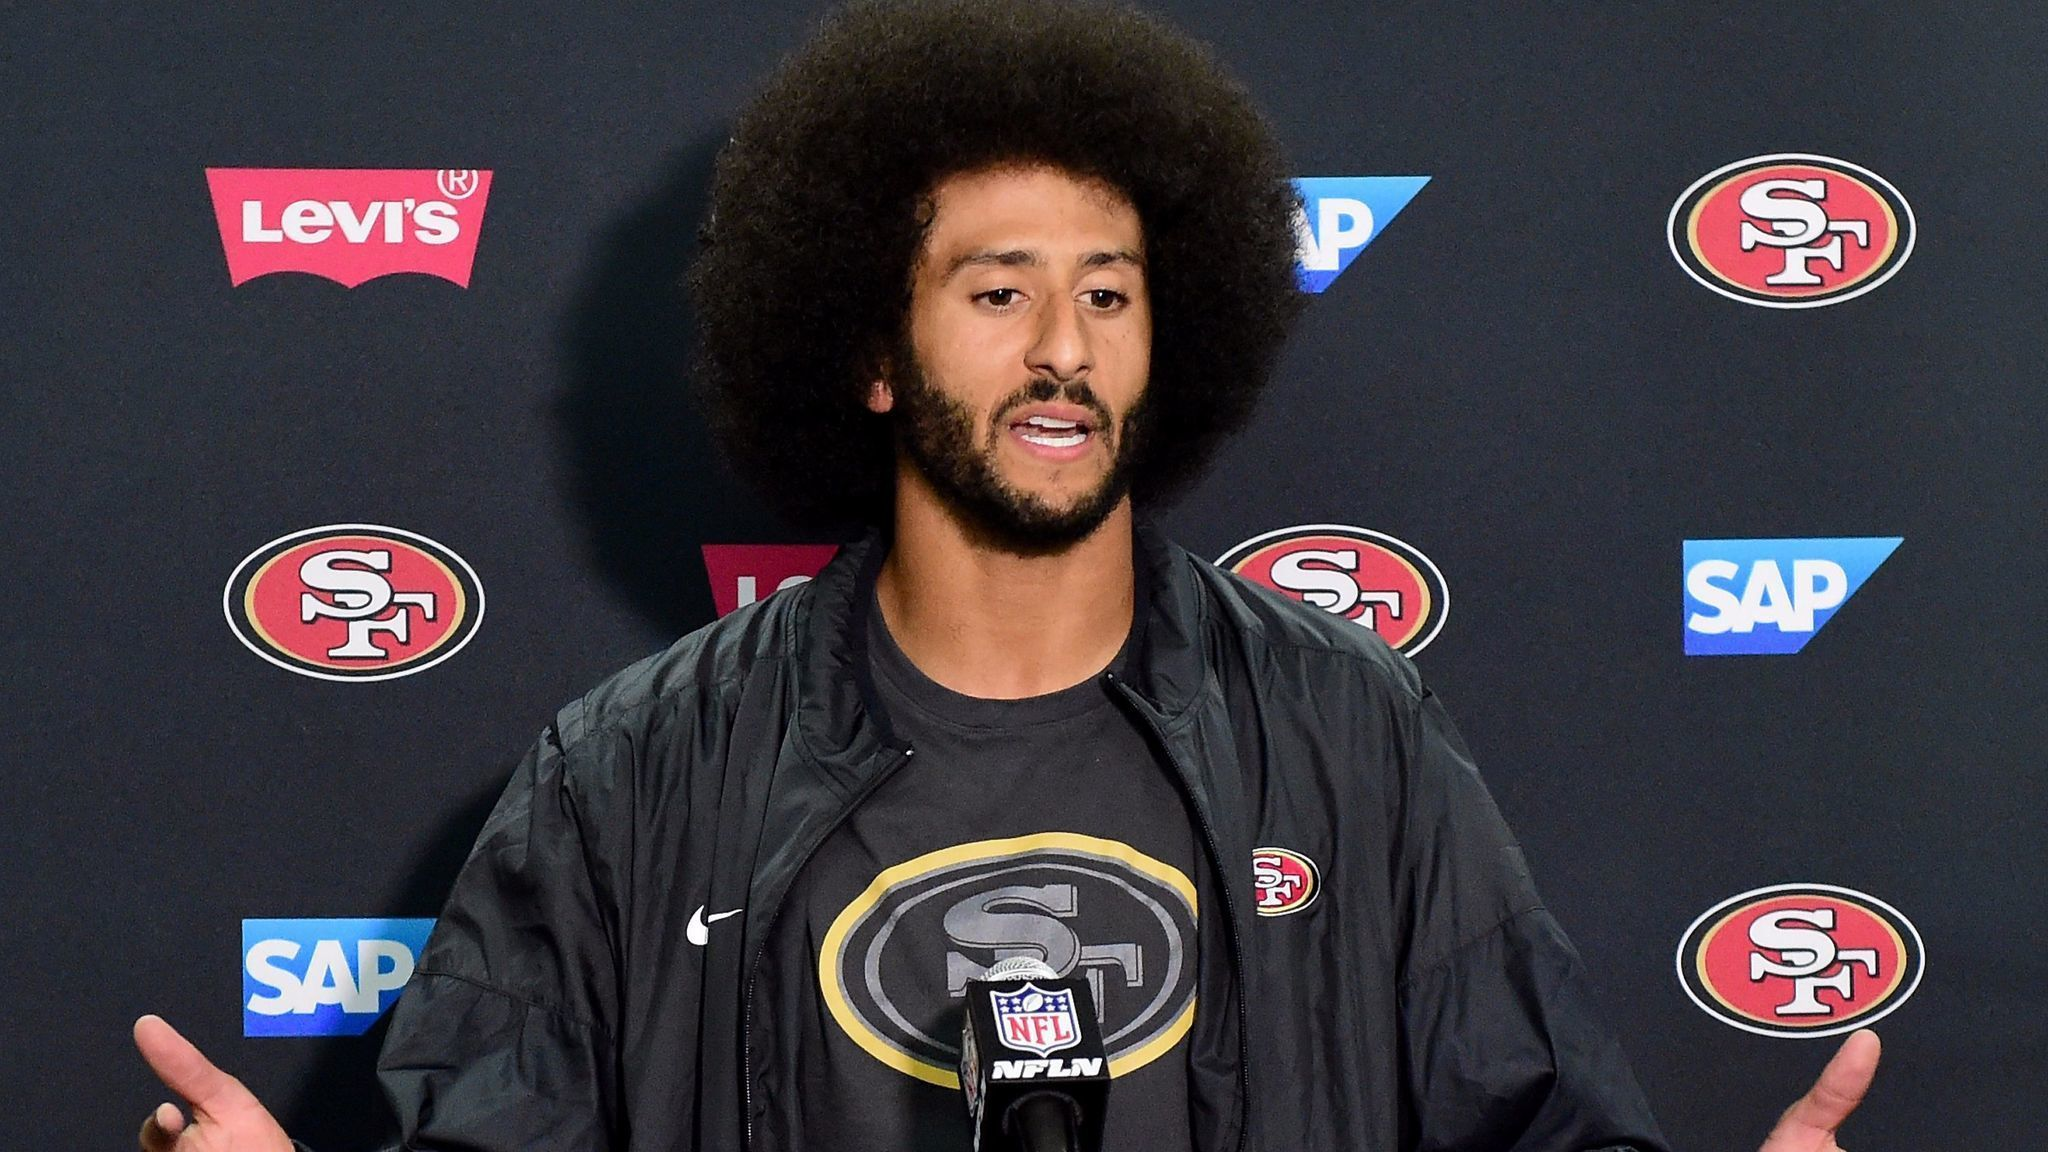 Should Chargers Have Worked Out Kaepernick Instead Of Rg3